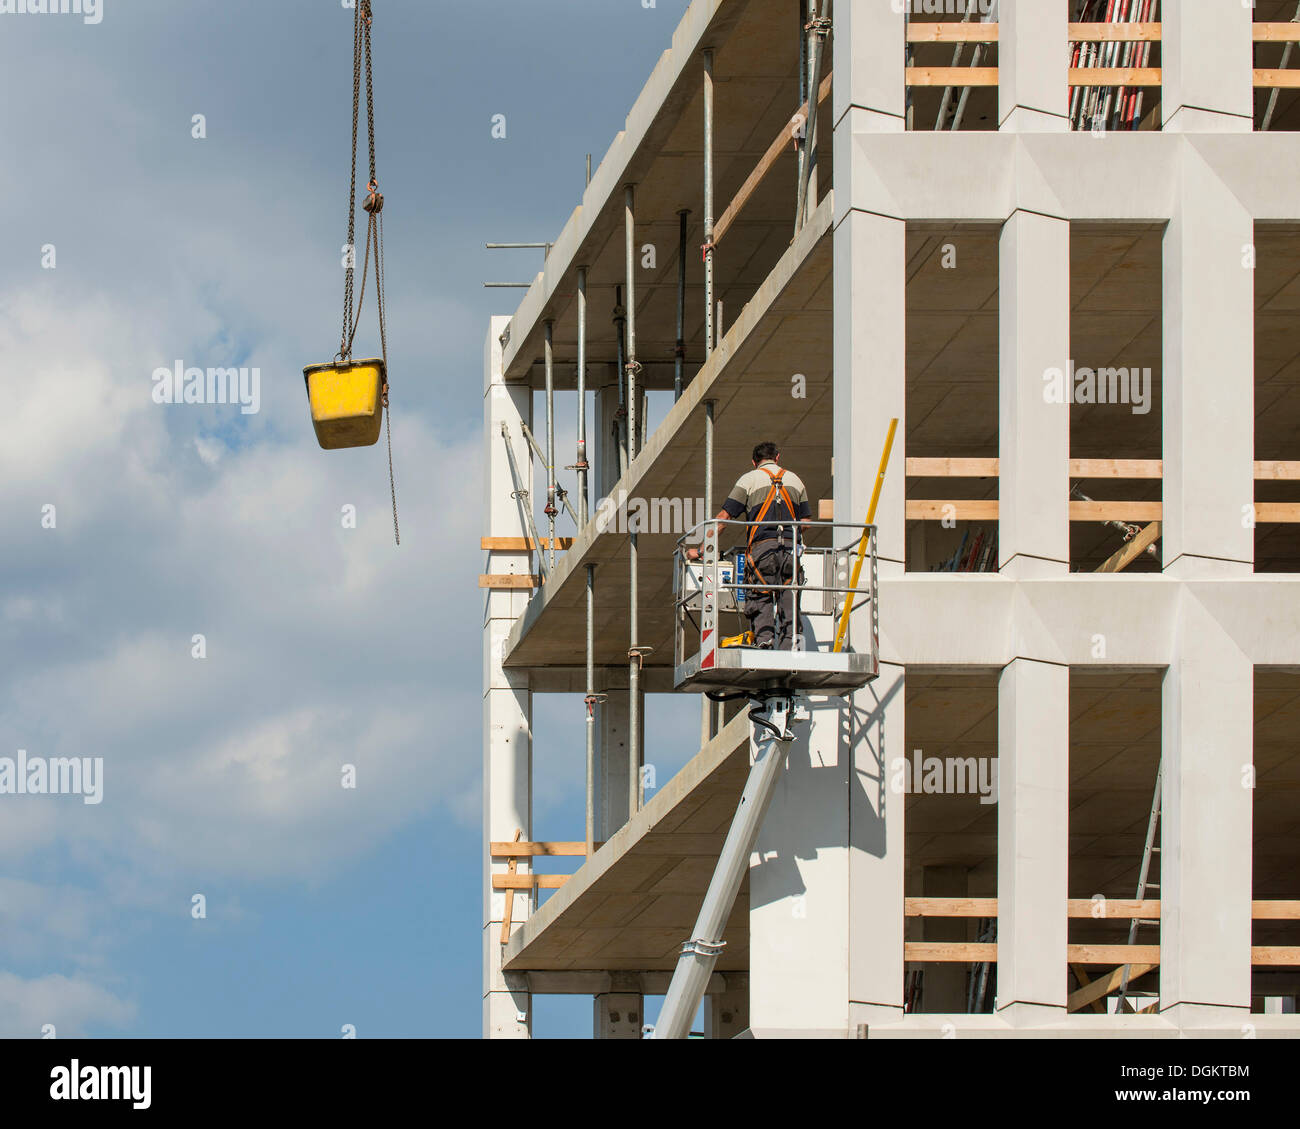 Workers in a lift at a construction site, a concrete vessel is being lowered from a crane, work safety, PublicGround - Stock Image